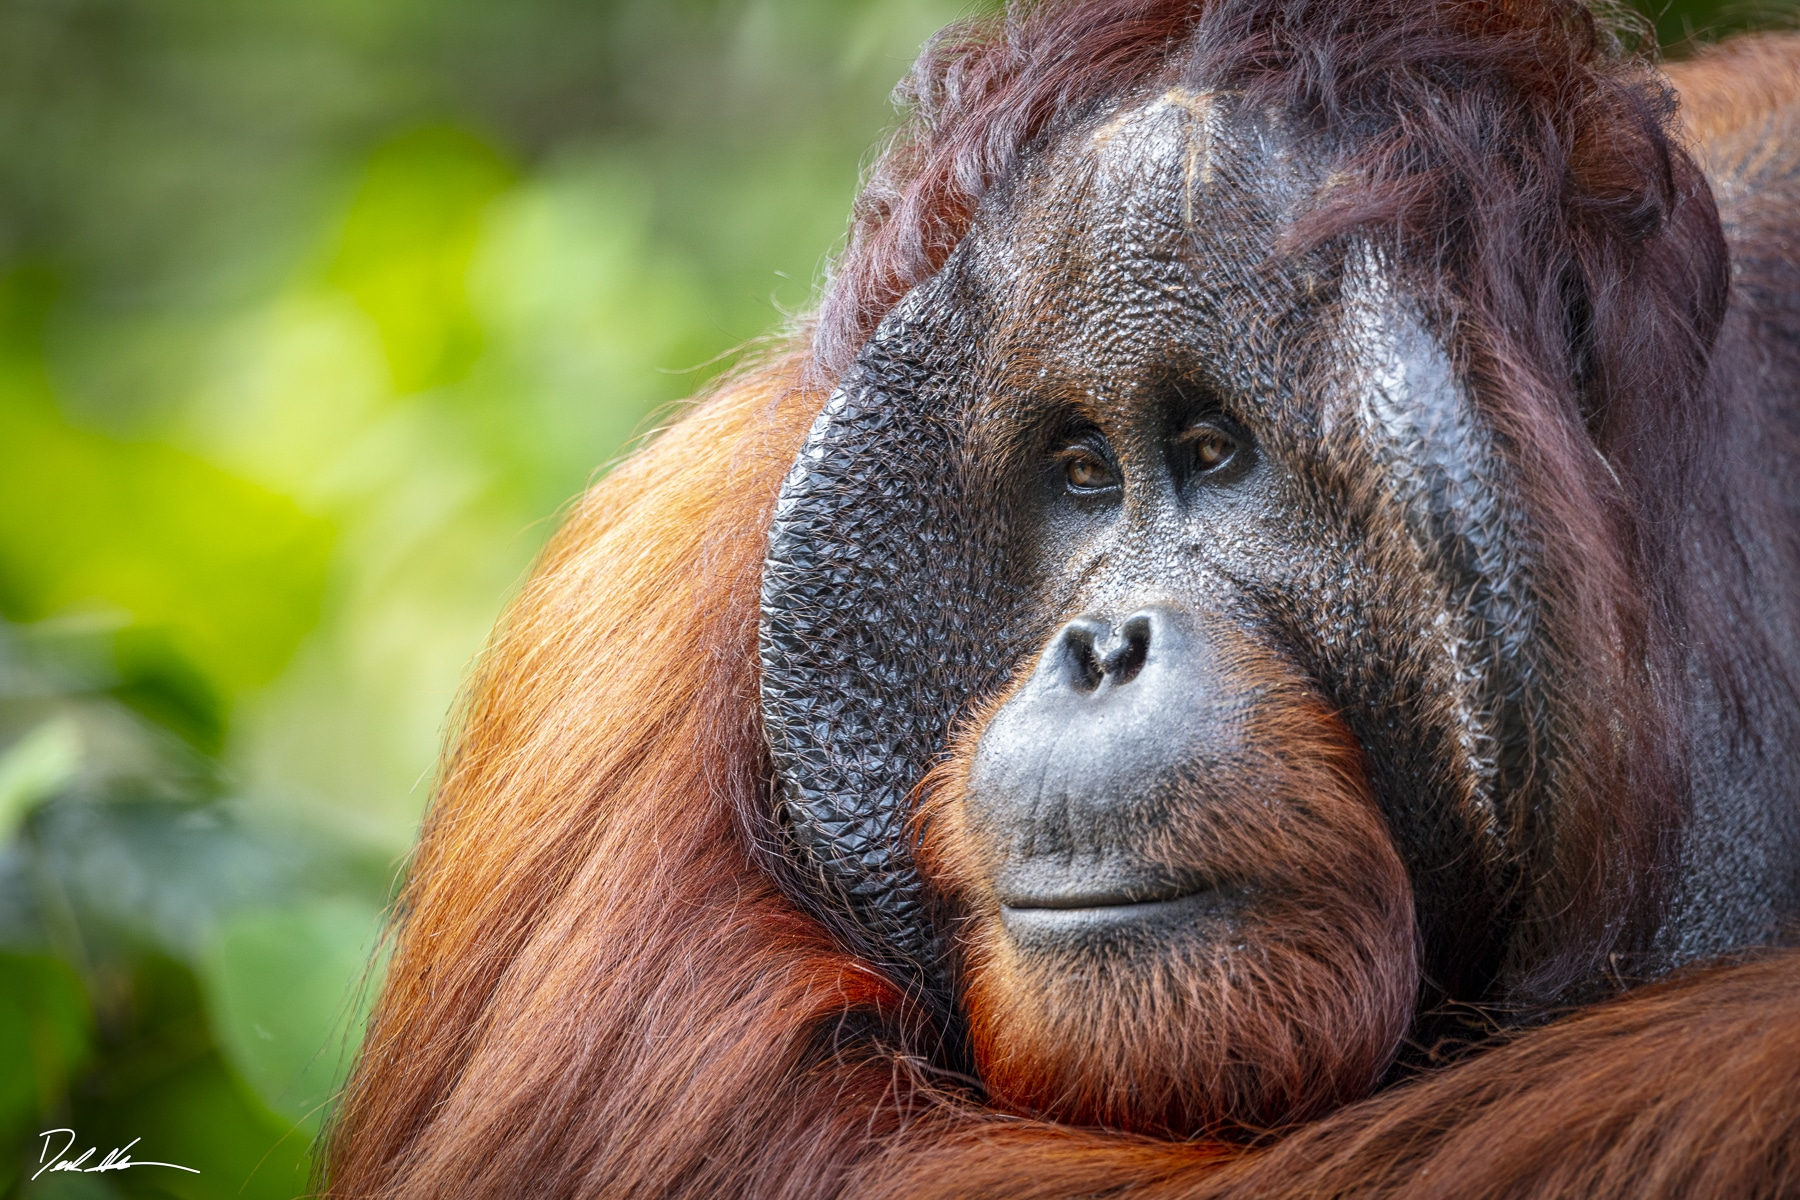 Orangutan in Borneo, jungle